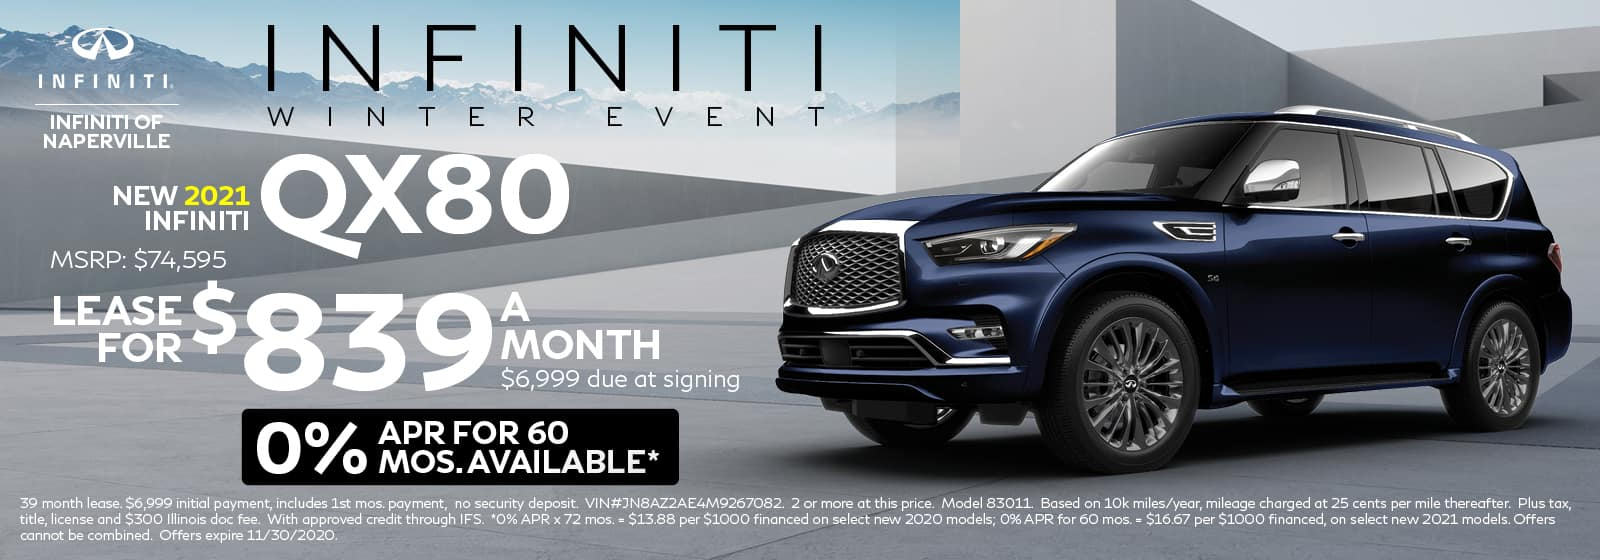 2021 INFINITI QX80 lease offer, $839/mo for 60 Months | Naperville, IL